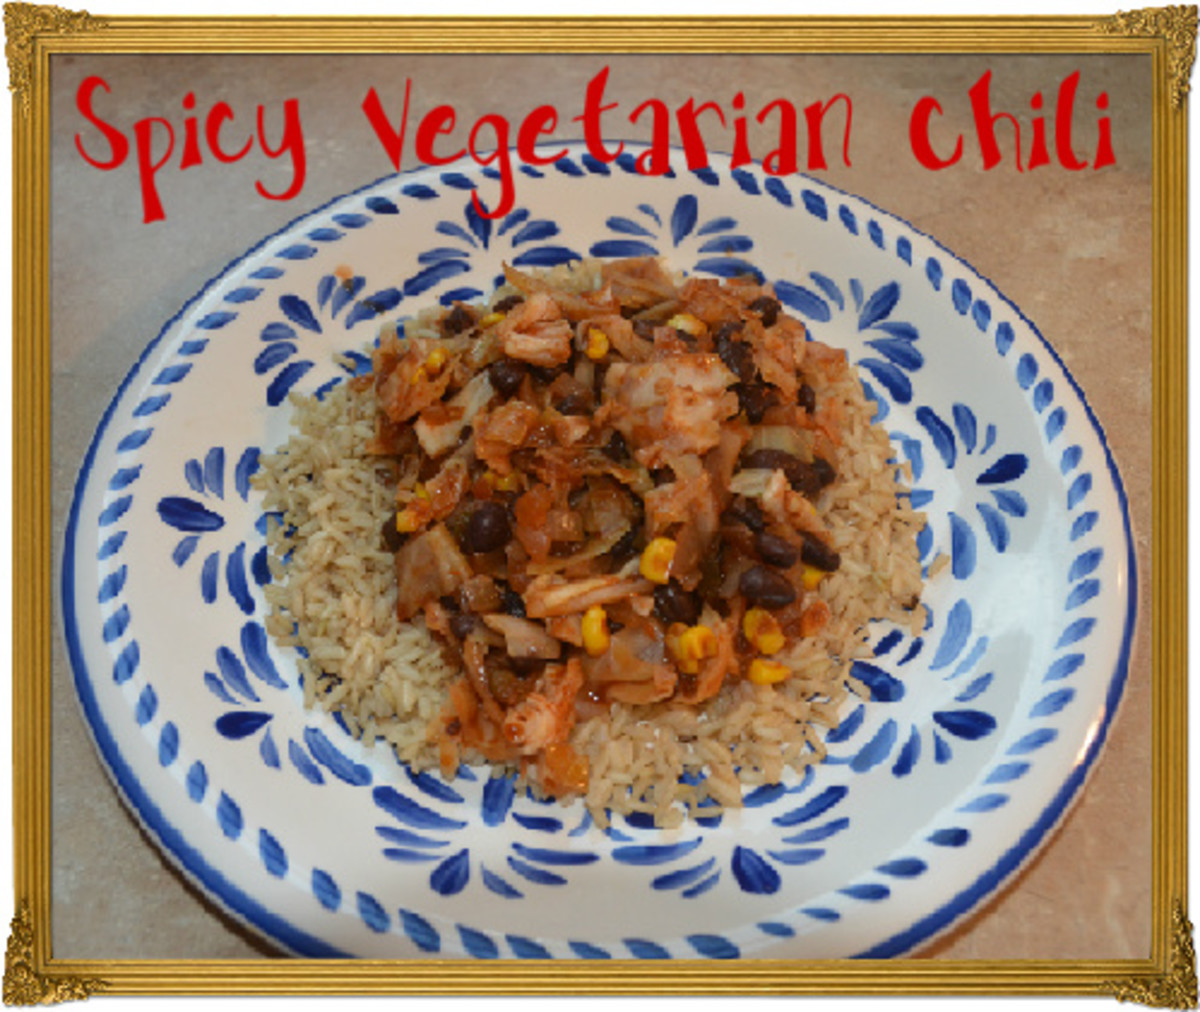 Spicy Vegetarian Chili with Cabbage and Black Beans